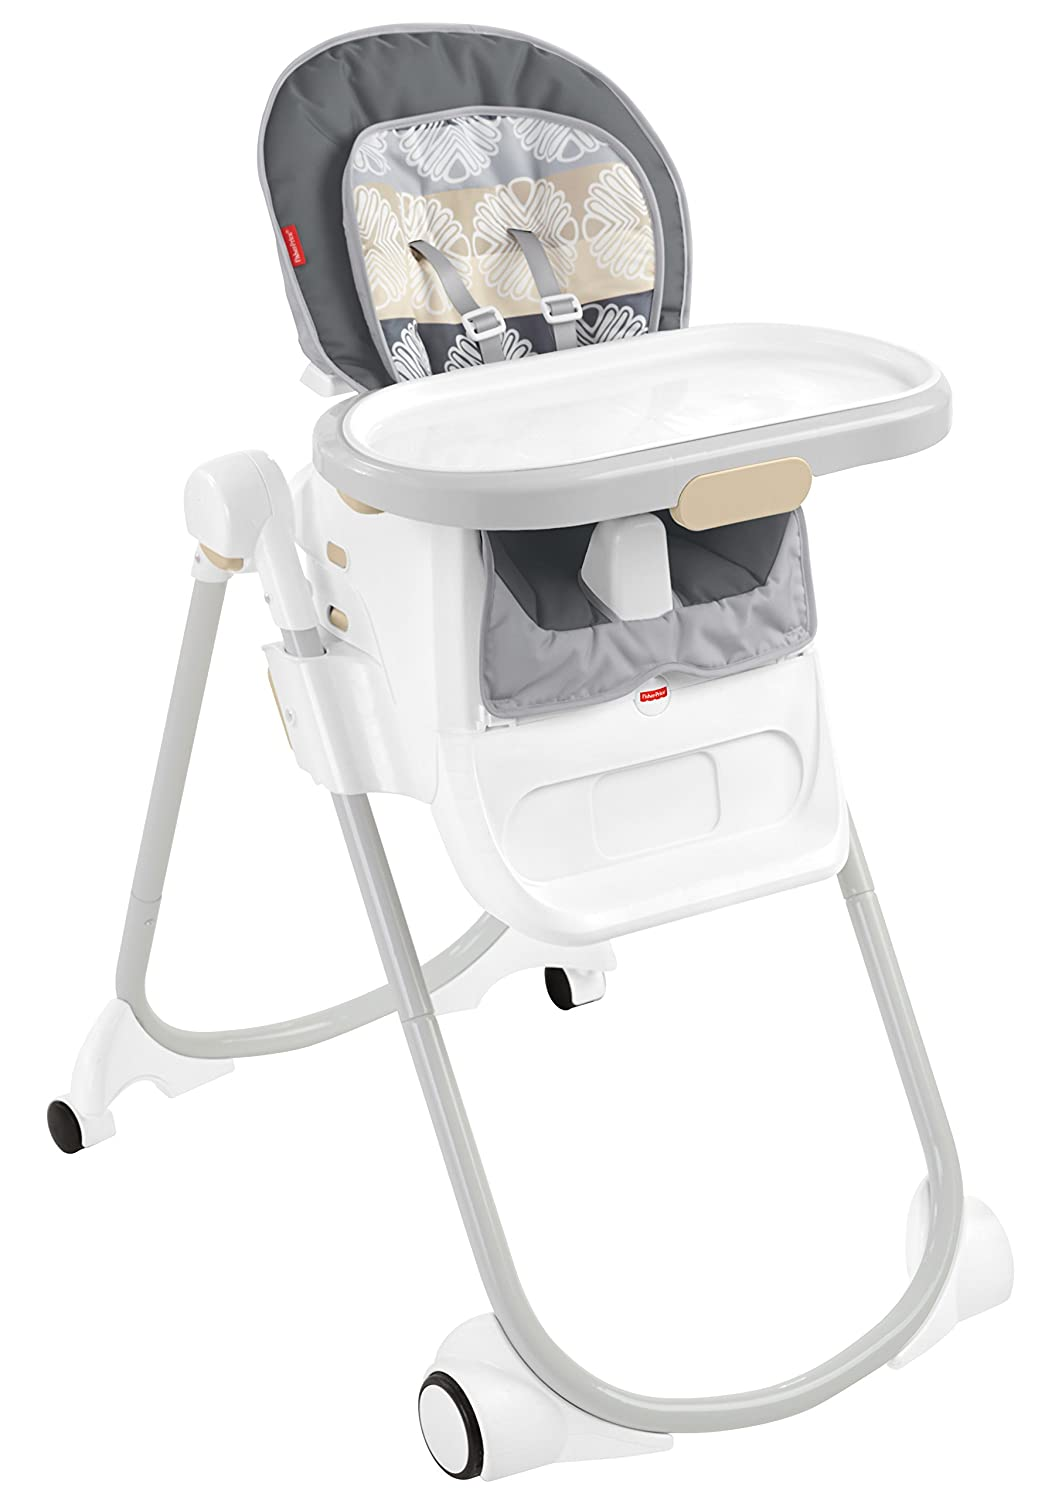 Fisher-Price 4-in-1 Total Clean High Chair FLH18